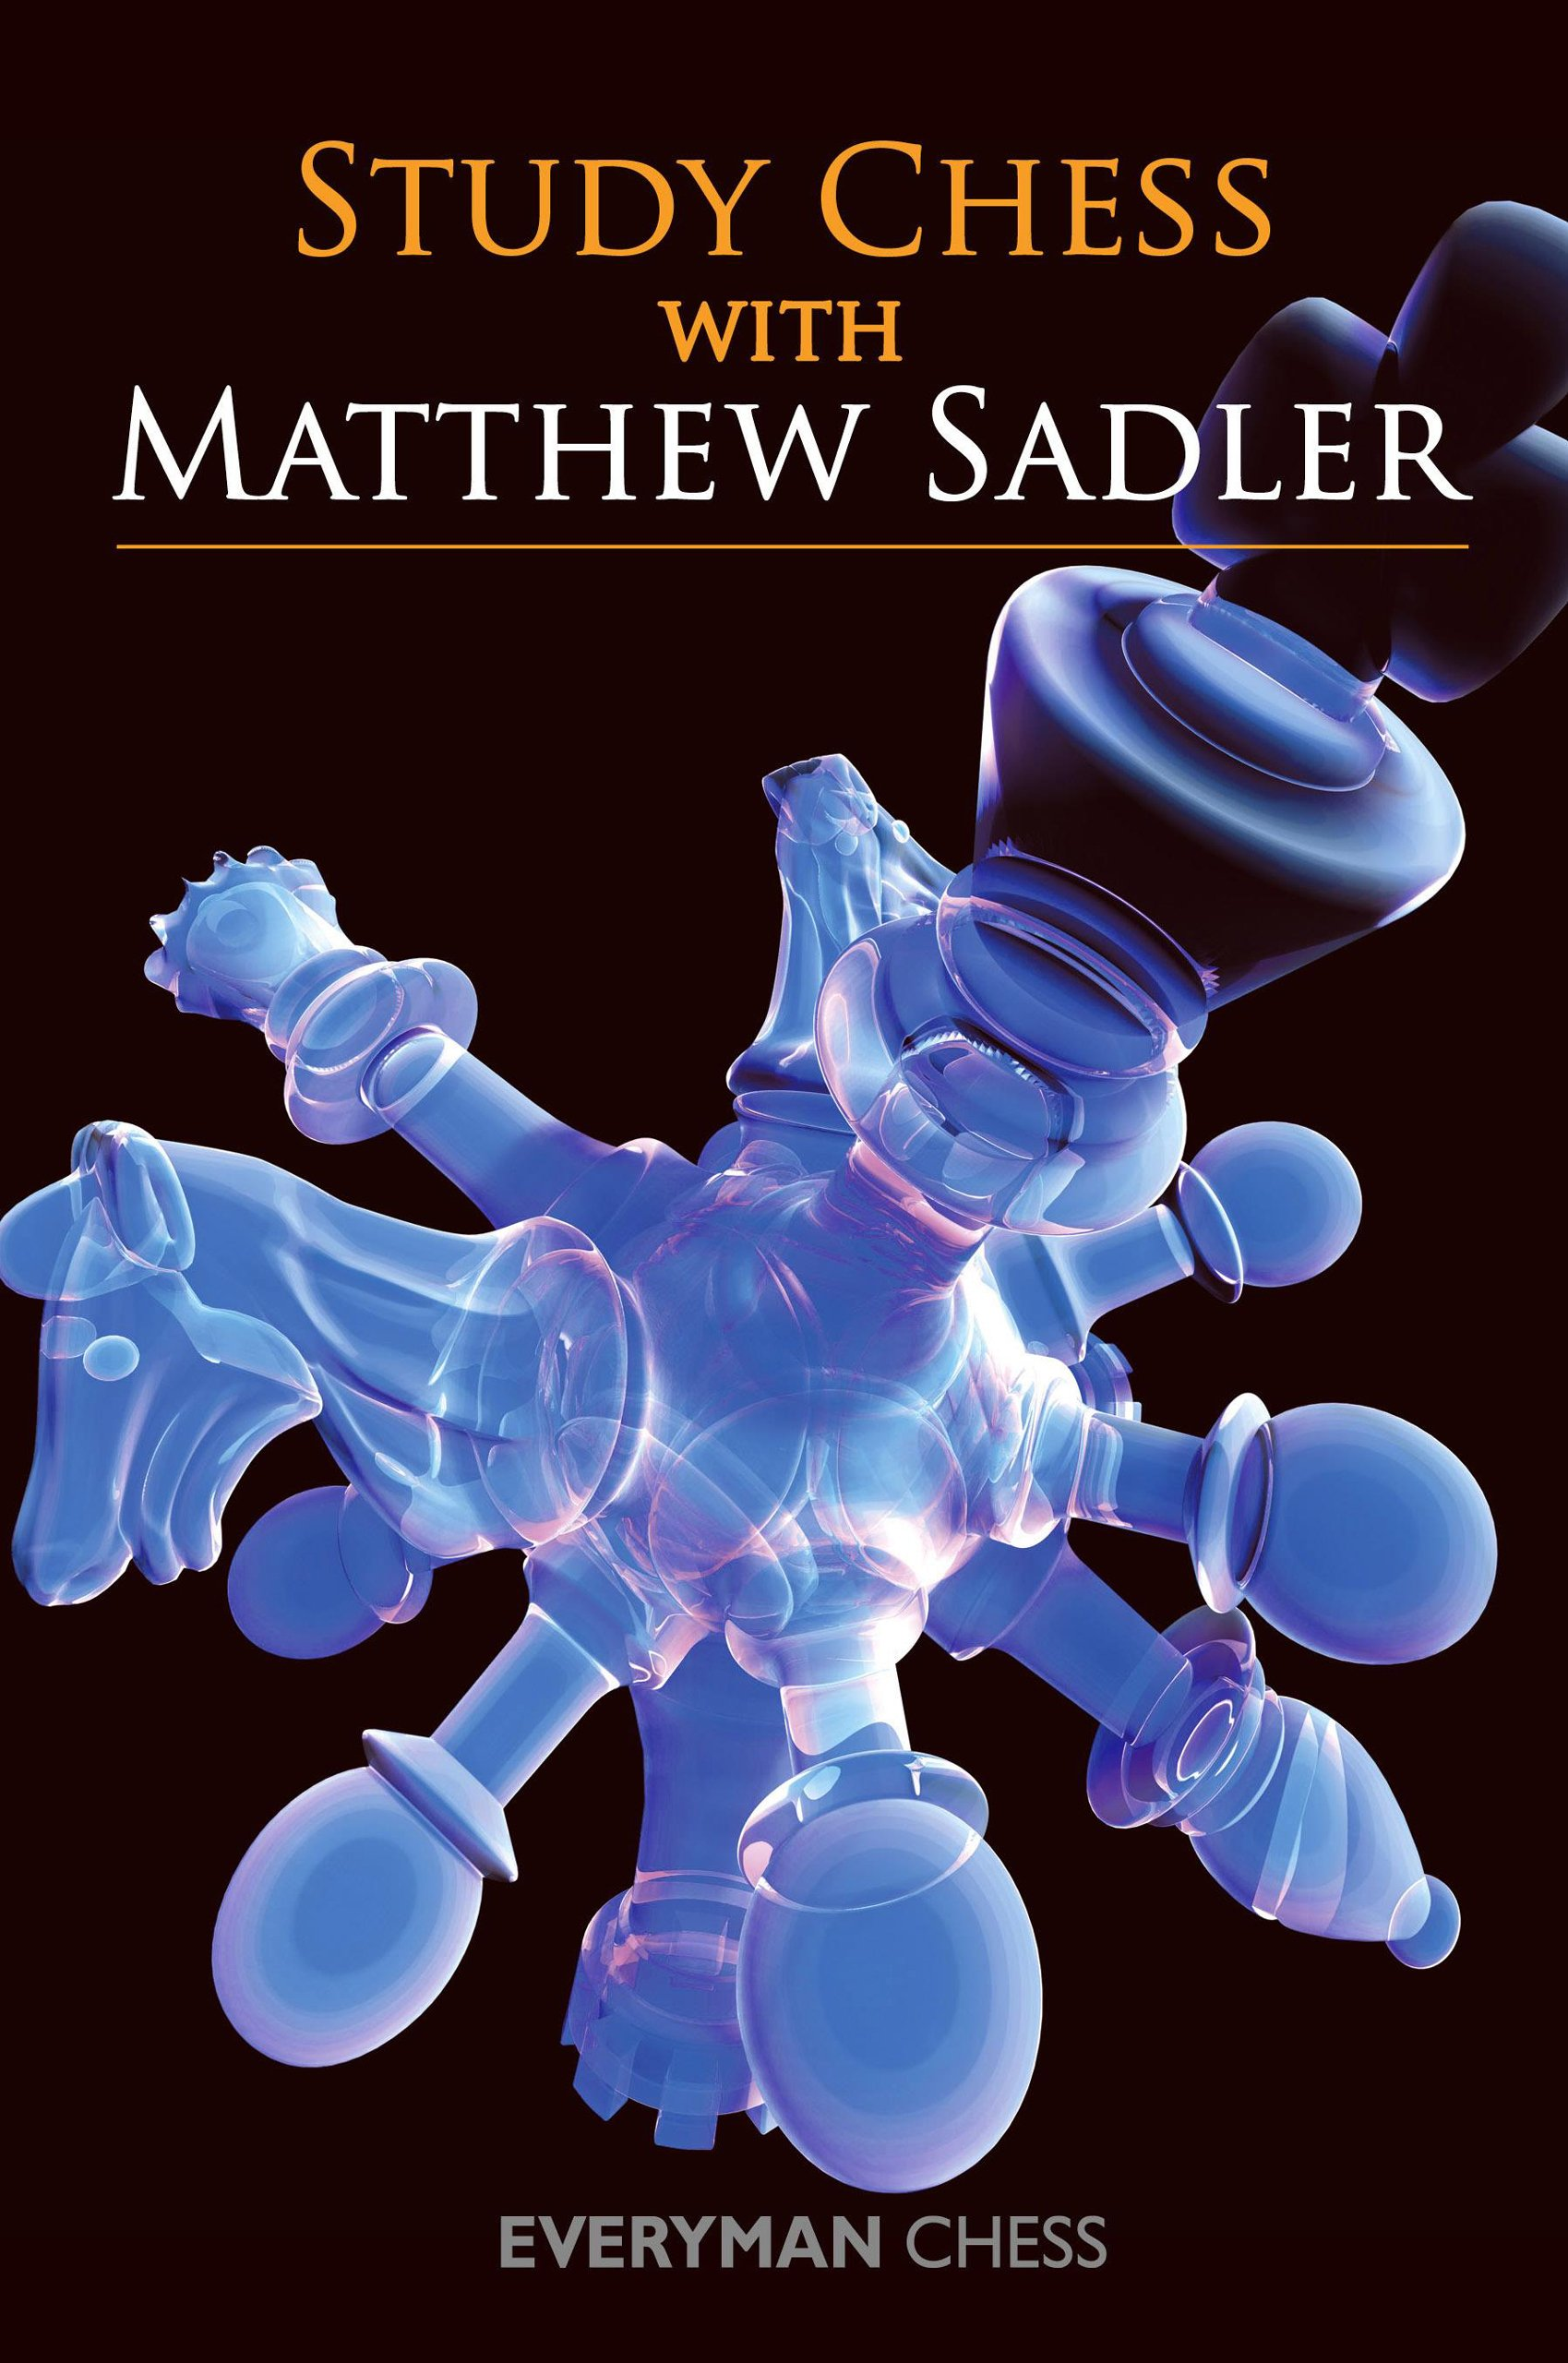 Study Chess With Matthew Sadler. Everyman. ISBN 978-1857449907.